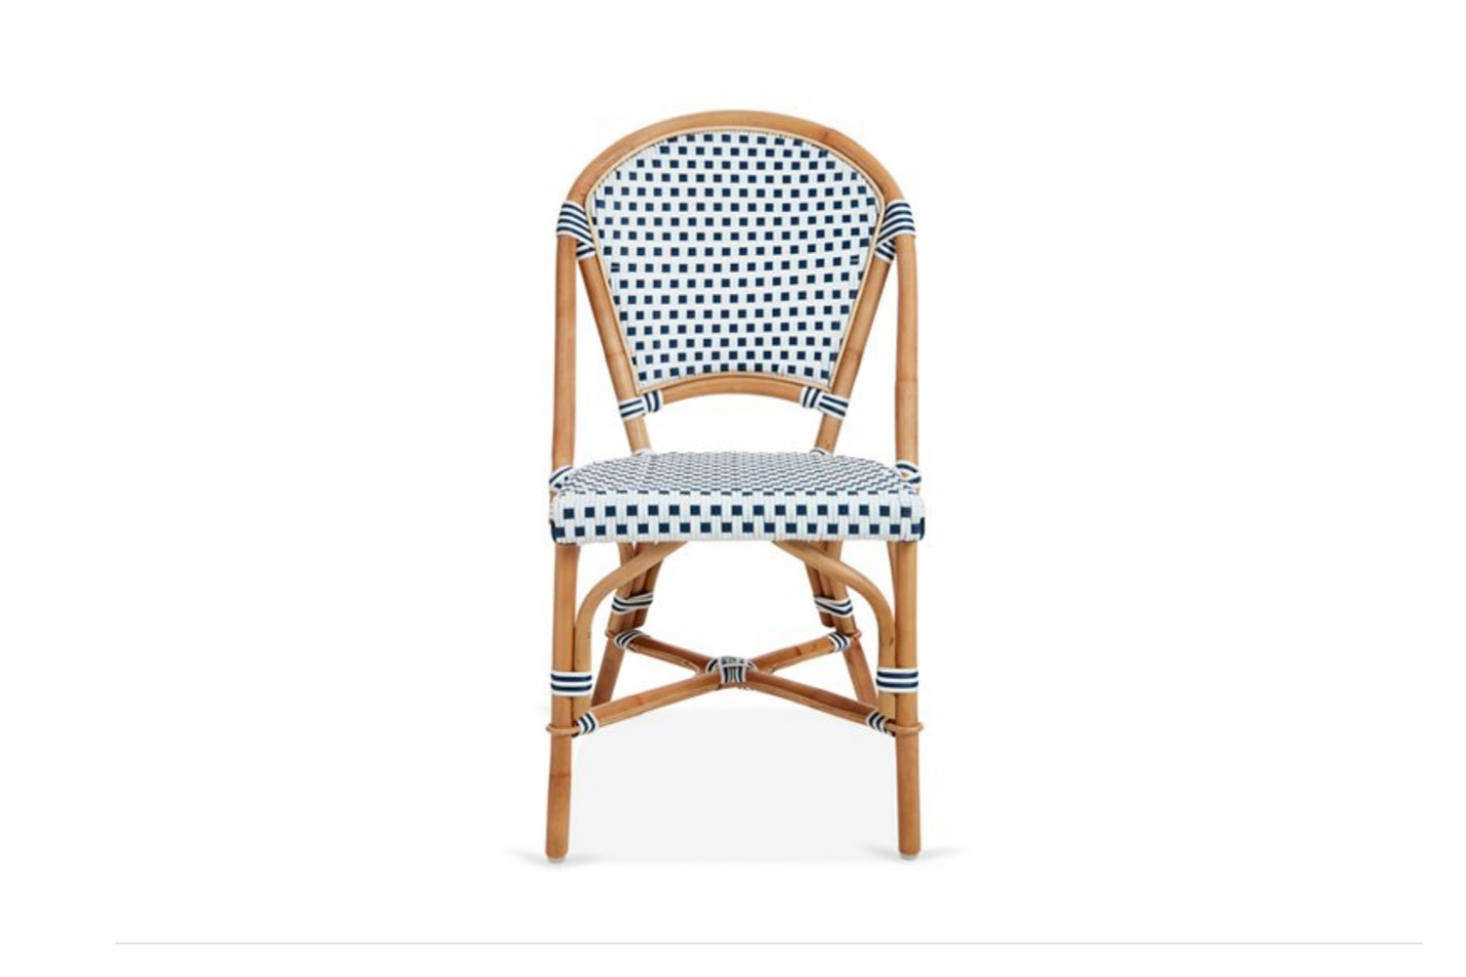 The Chloe Bistro Side Chair has a rattan frame and weatherproof cording (we like the striped banding); it's $240 from One Kings Lane, which also offers a range of other bistro chairs.